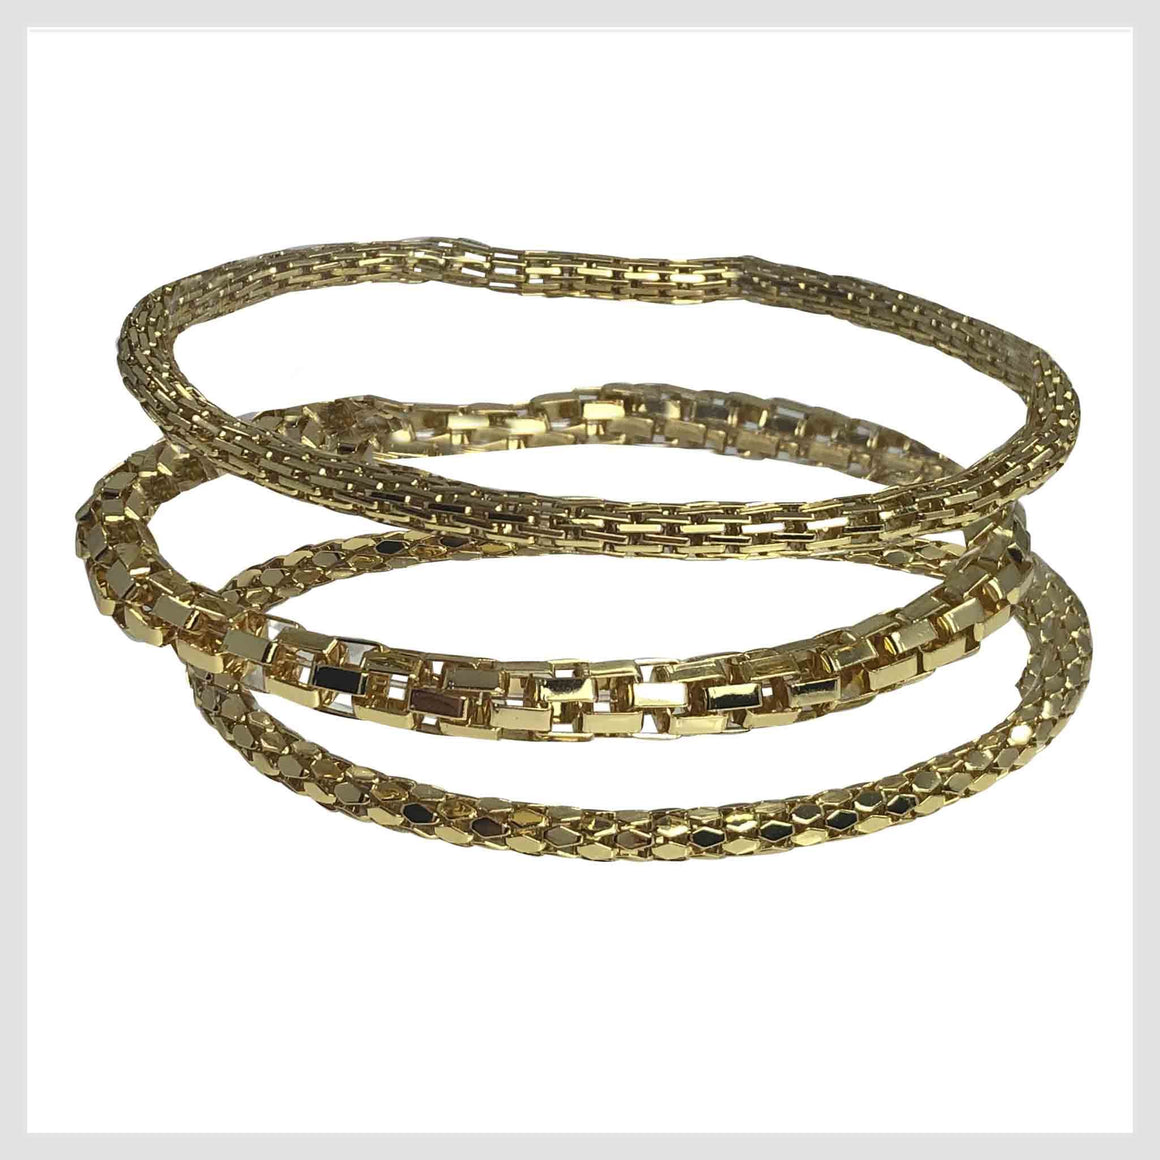 12K Gold Plated Mesh Chain Stretch Bracelet Set of 3 Hex, Textured, Box Link - Beads and Dangles